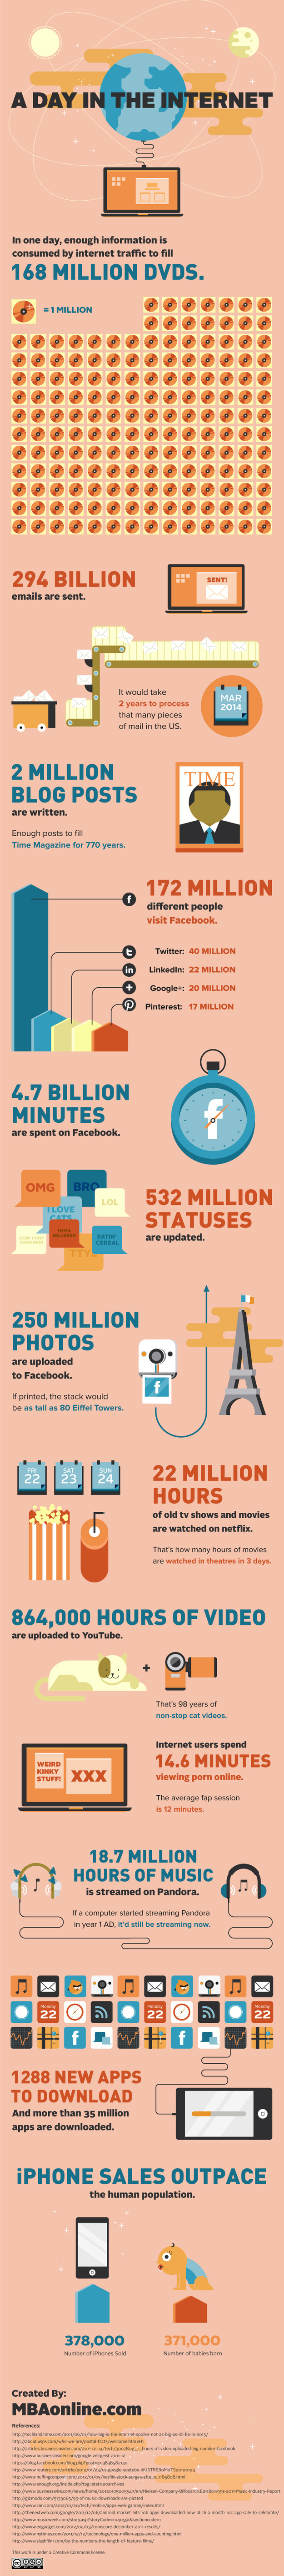 What A Day On The Internet Looks Like Infographic Marketing Social Media Infographic Infographic